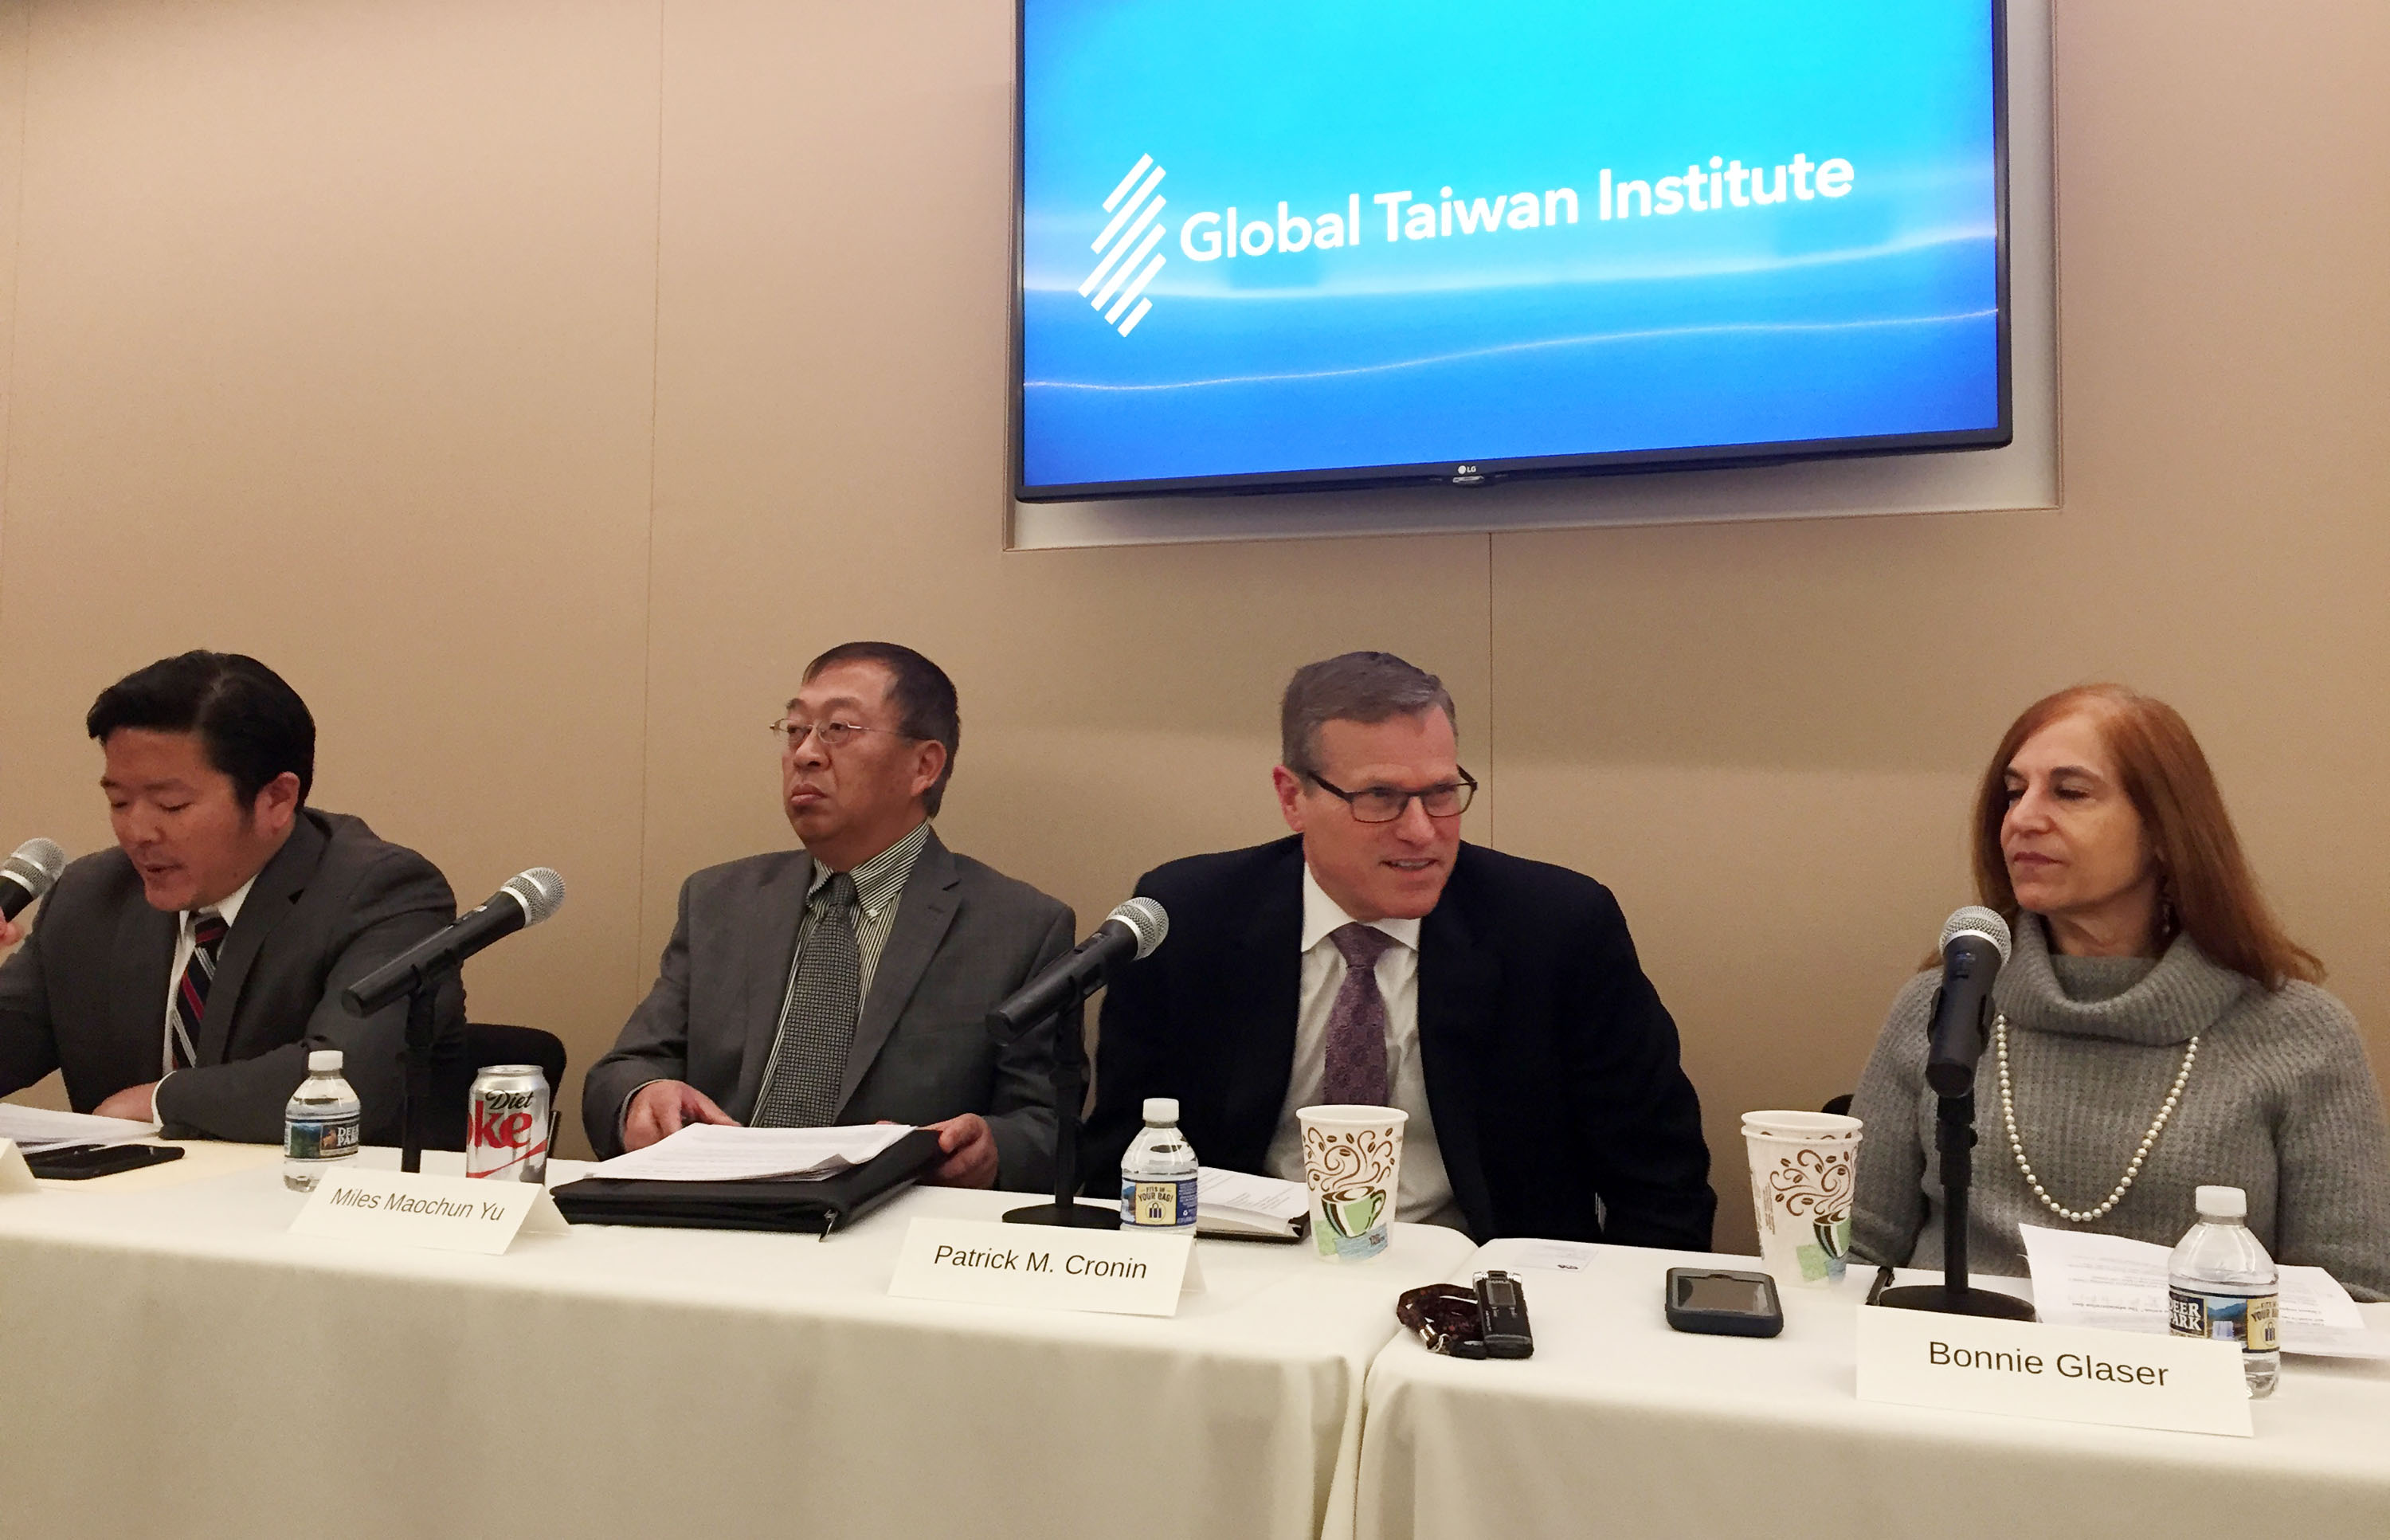 The Global Taiwan Institute seminar with Bonnie Glaser (first right) and Miles Maochun Yu (second left).